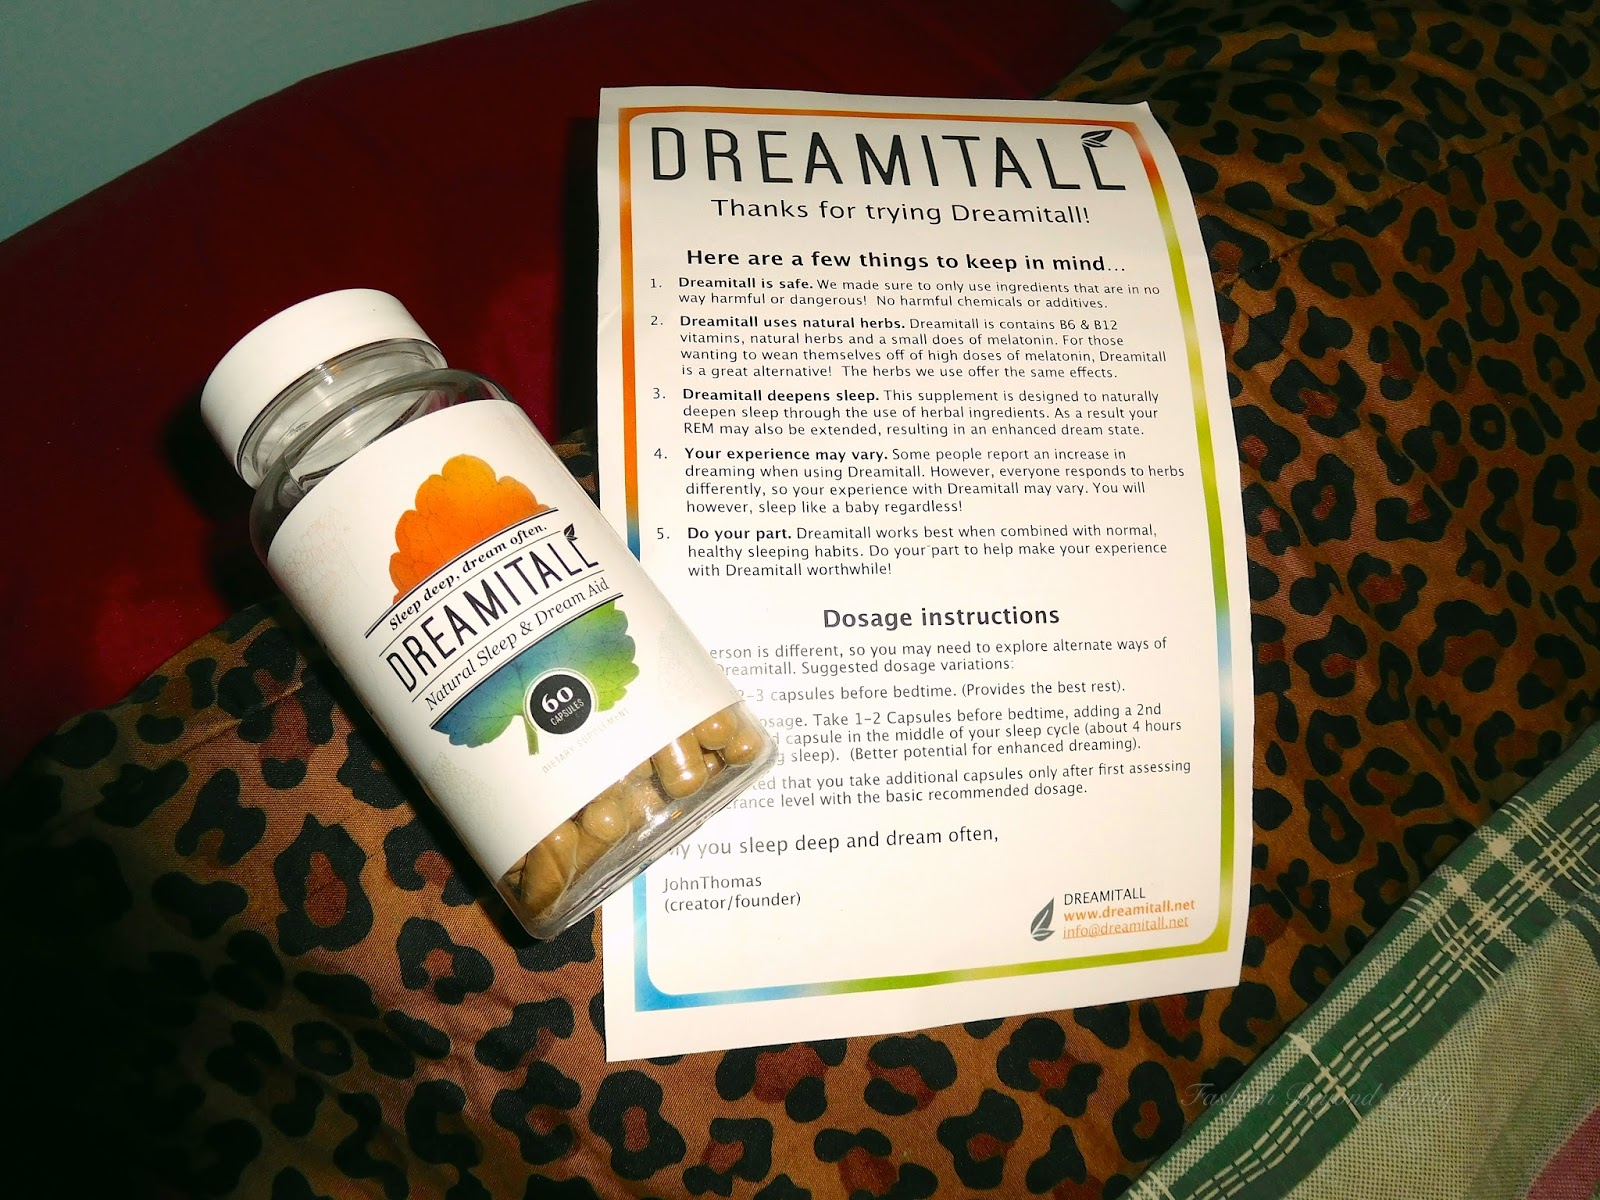 Dreamitall Natural Herbal Sleep Supplement